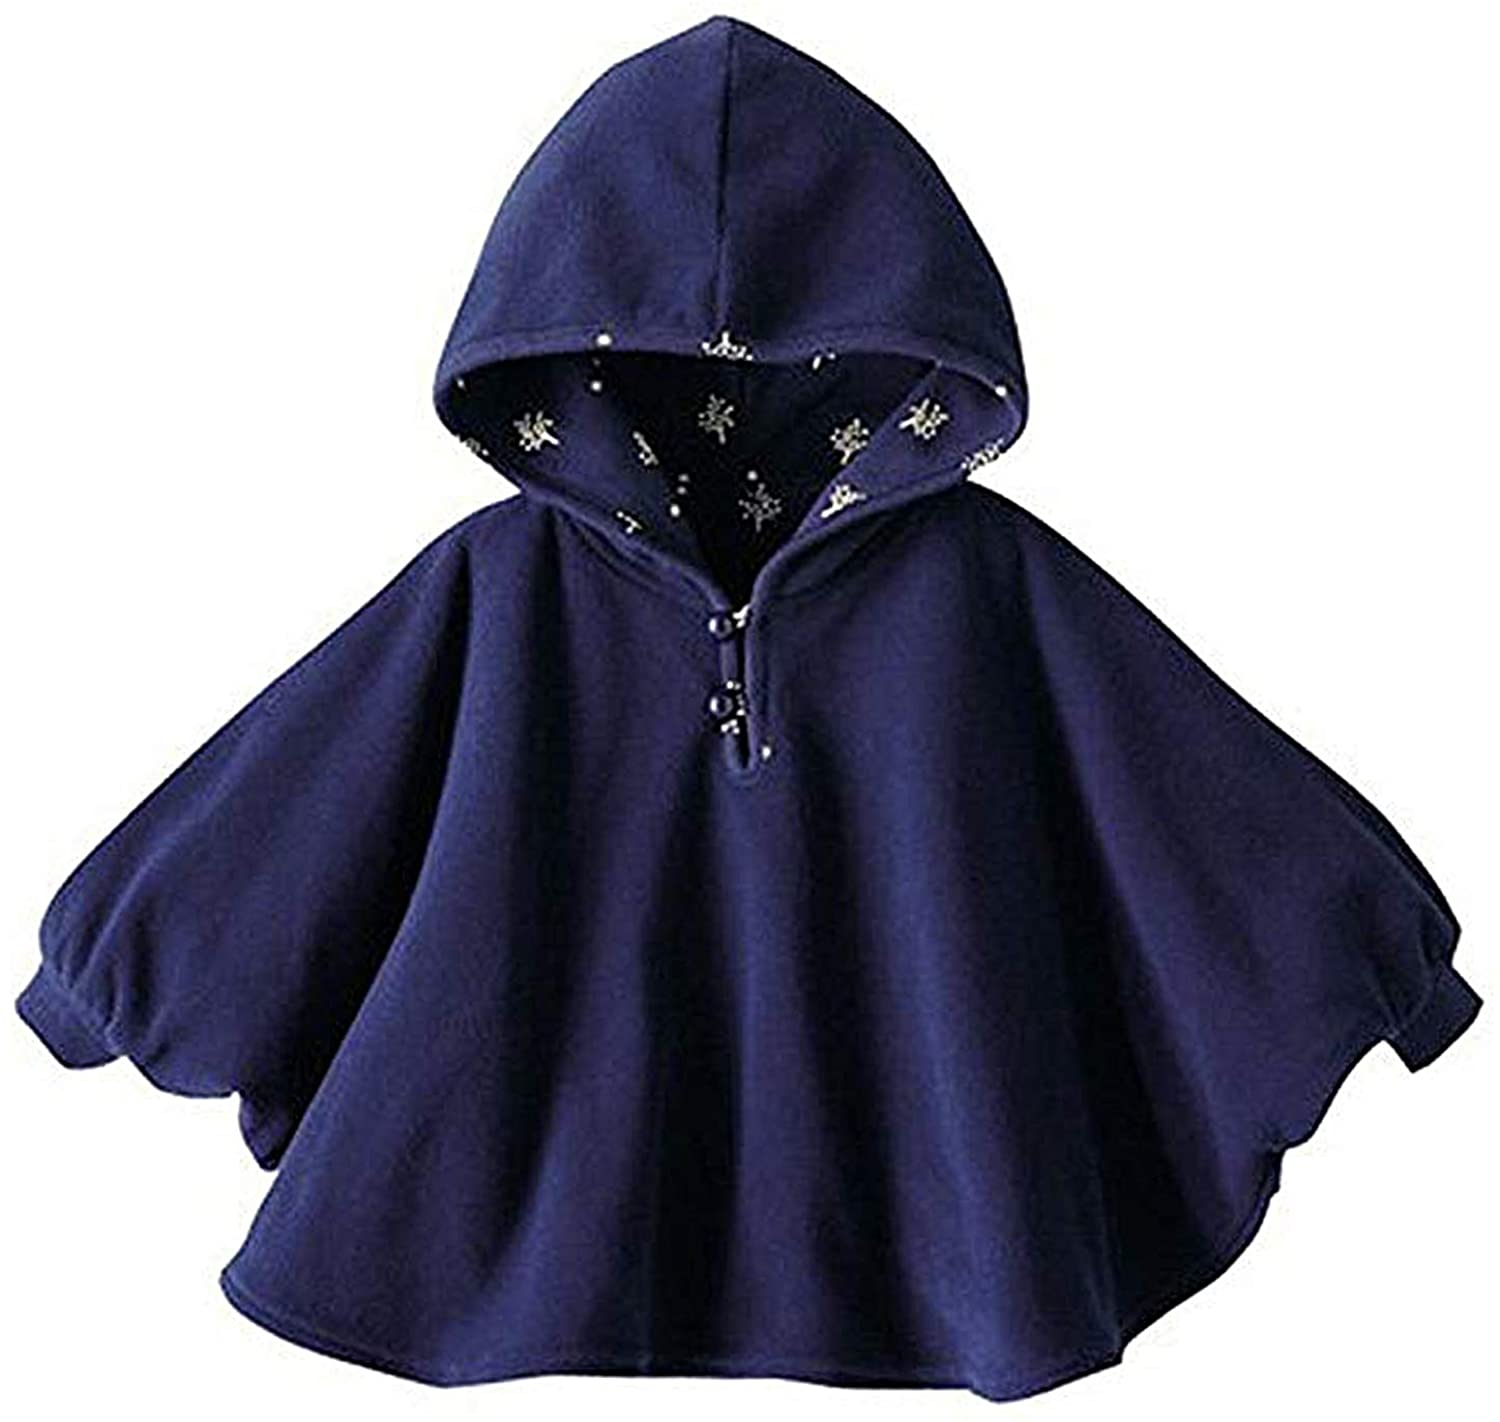 TSWRK Baby's Double-Side Wear Cape Coat Snowsuit Warm Poncho for Girls Boys Toddlers(0-3Years)